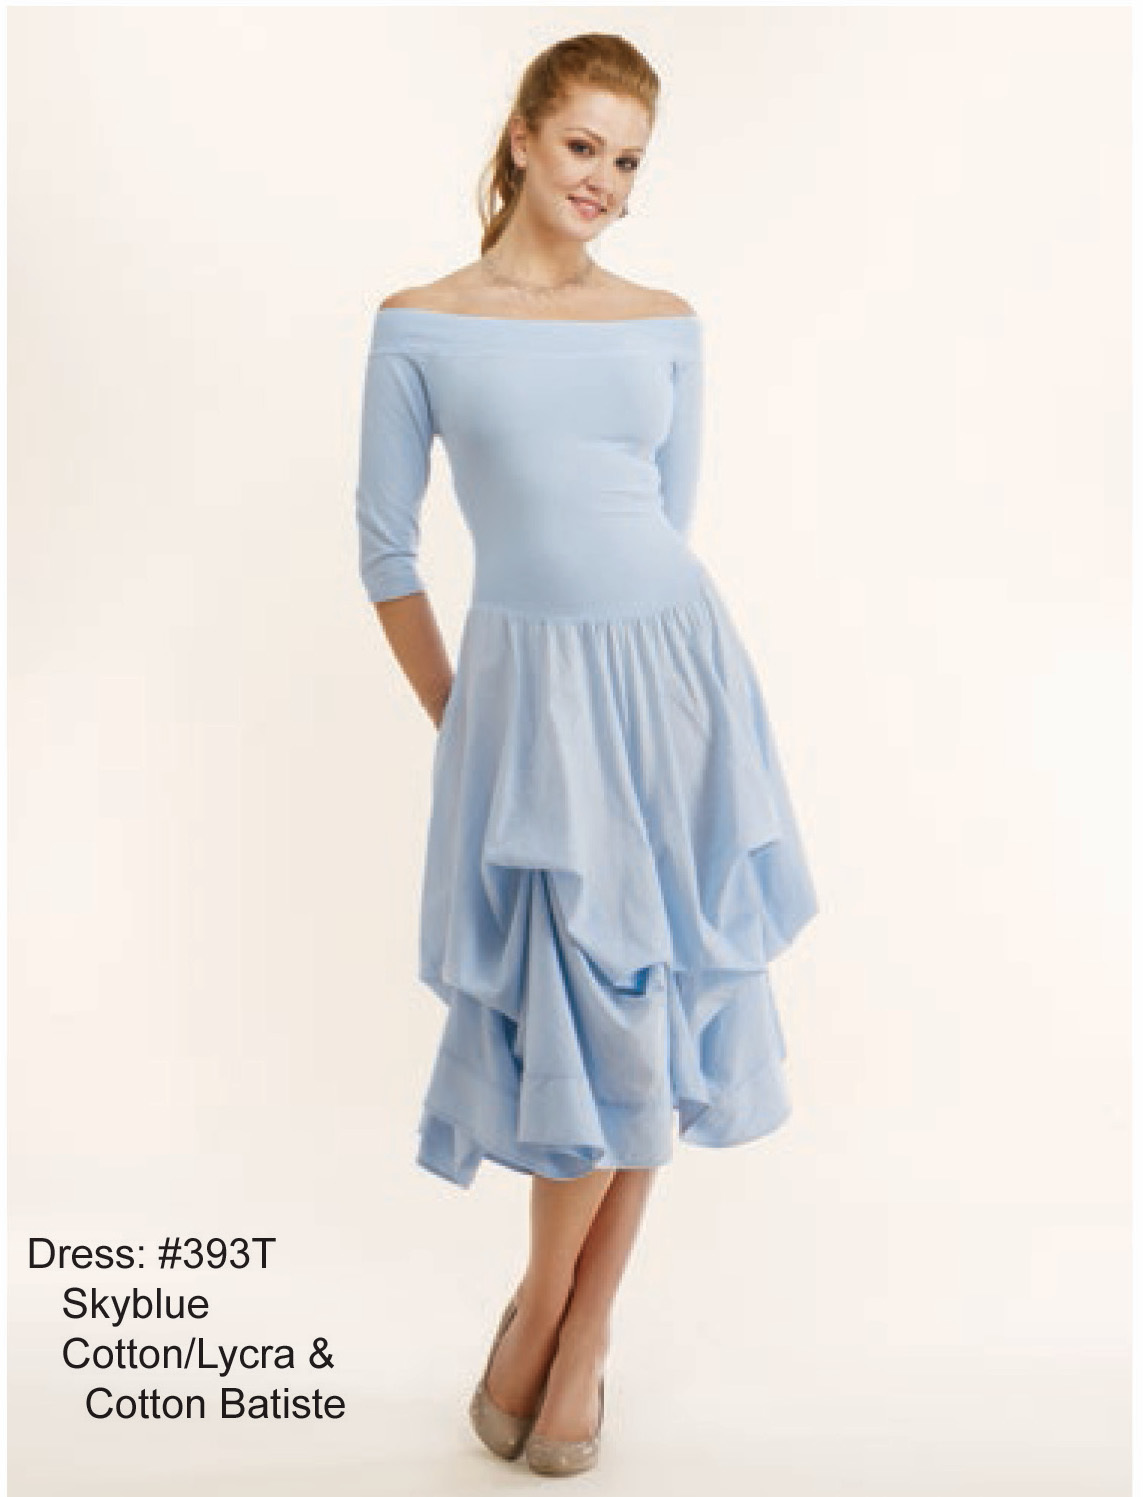 Luna Luz: Tied & Dyed Off The Shoulder Godet Dress (Many Colors, Some Ship Immed & Without Ties Available!)